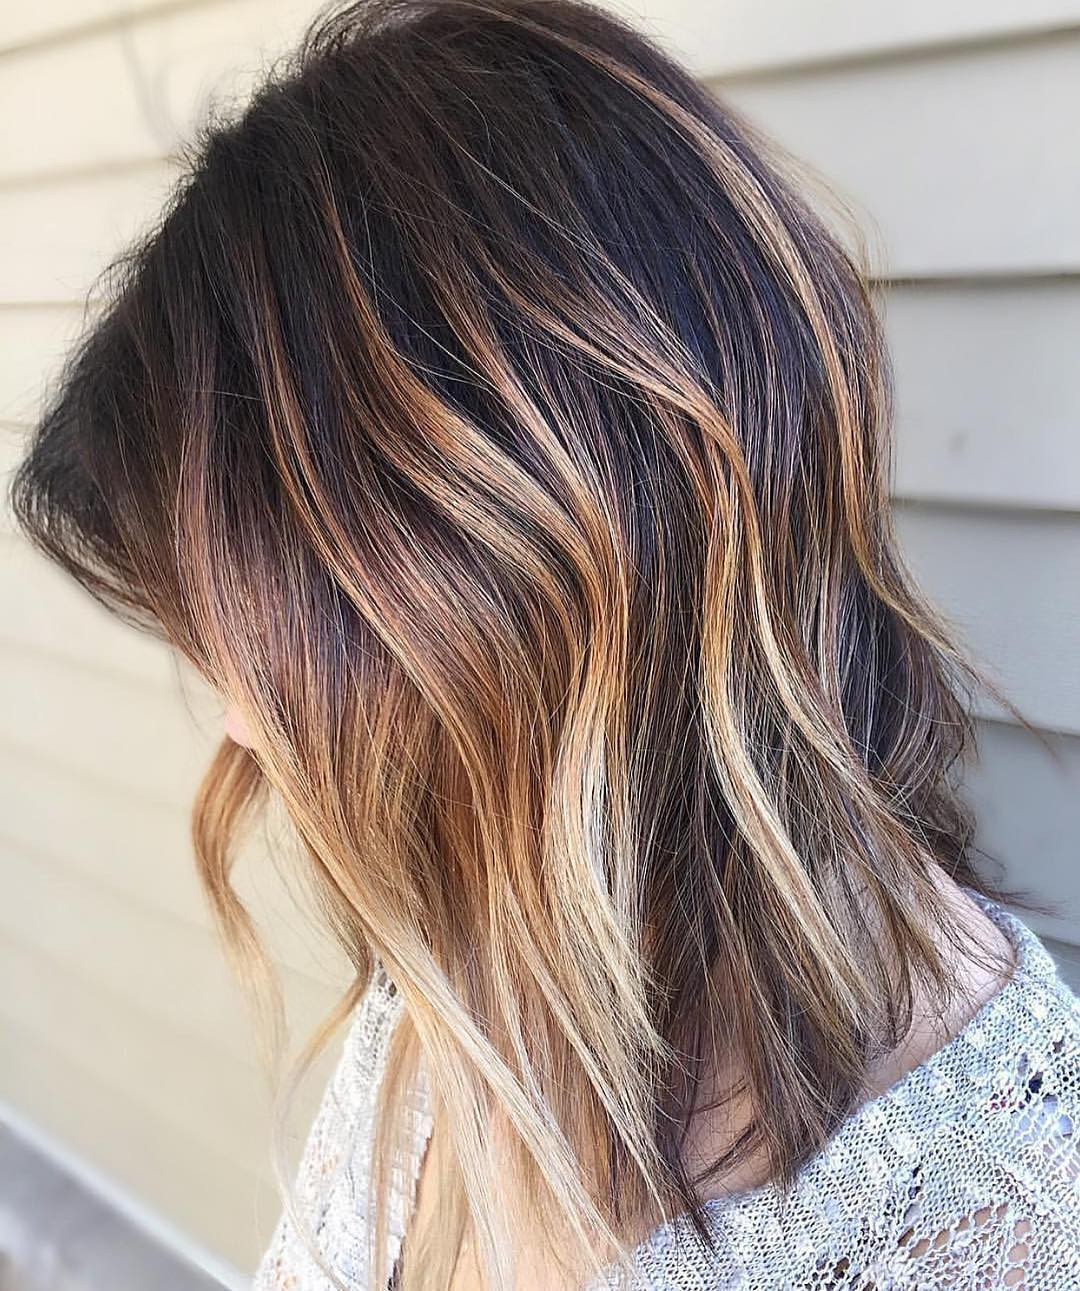 10 Medium Length Hair Color Ideas 2020